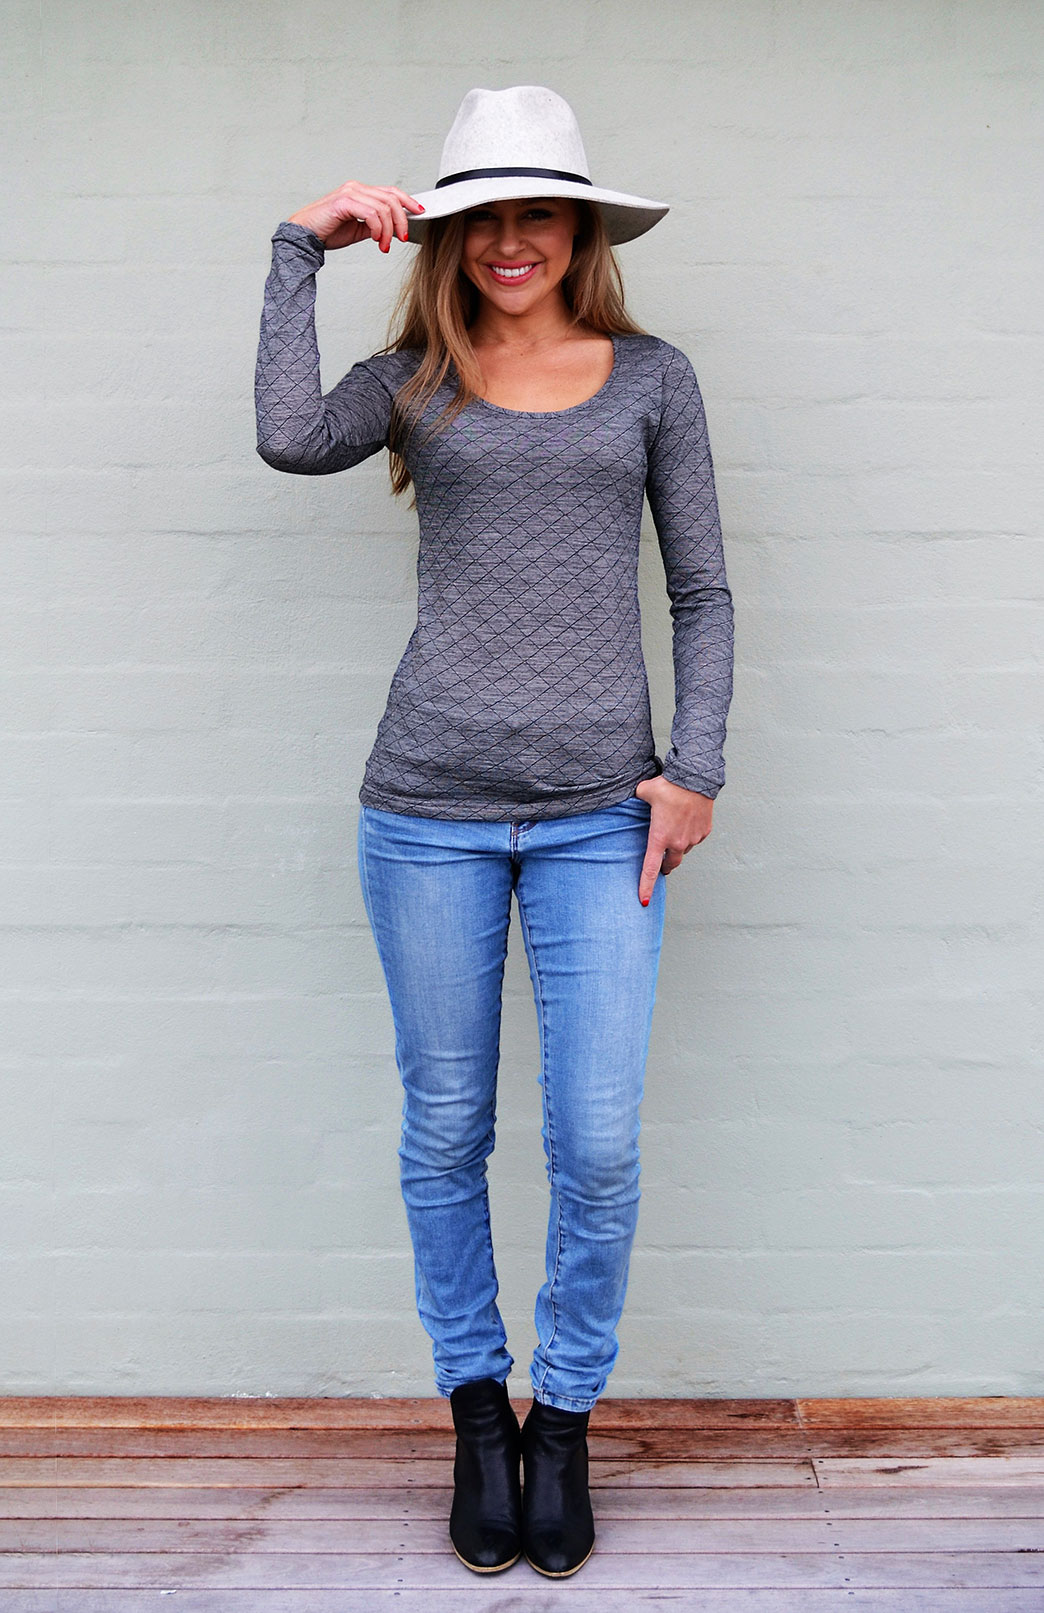 Diamond Pattern Scoop Neck Top - Smitten Merino Tasmania Australia